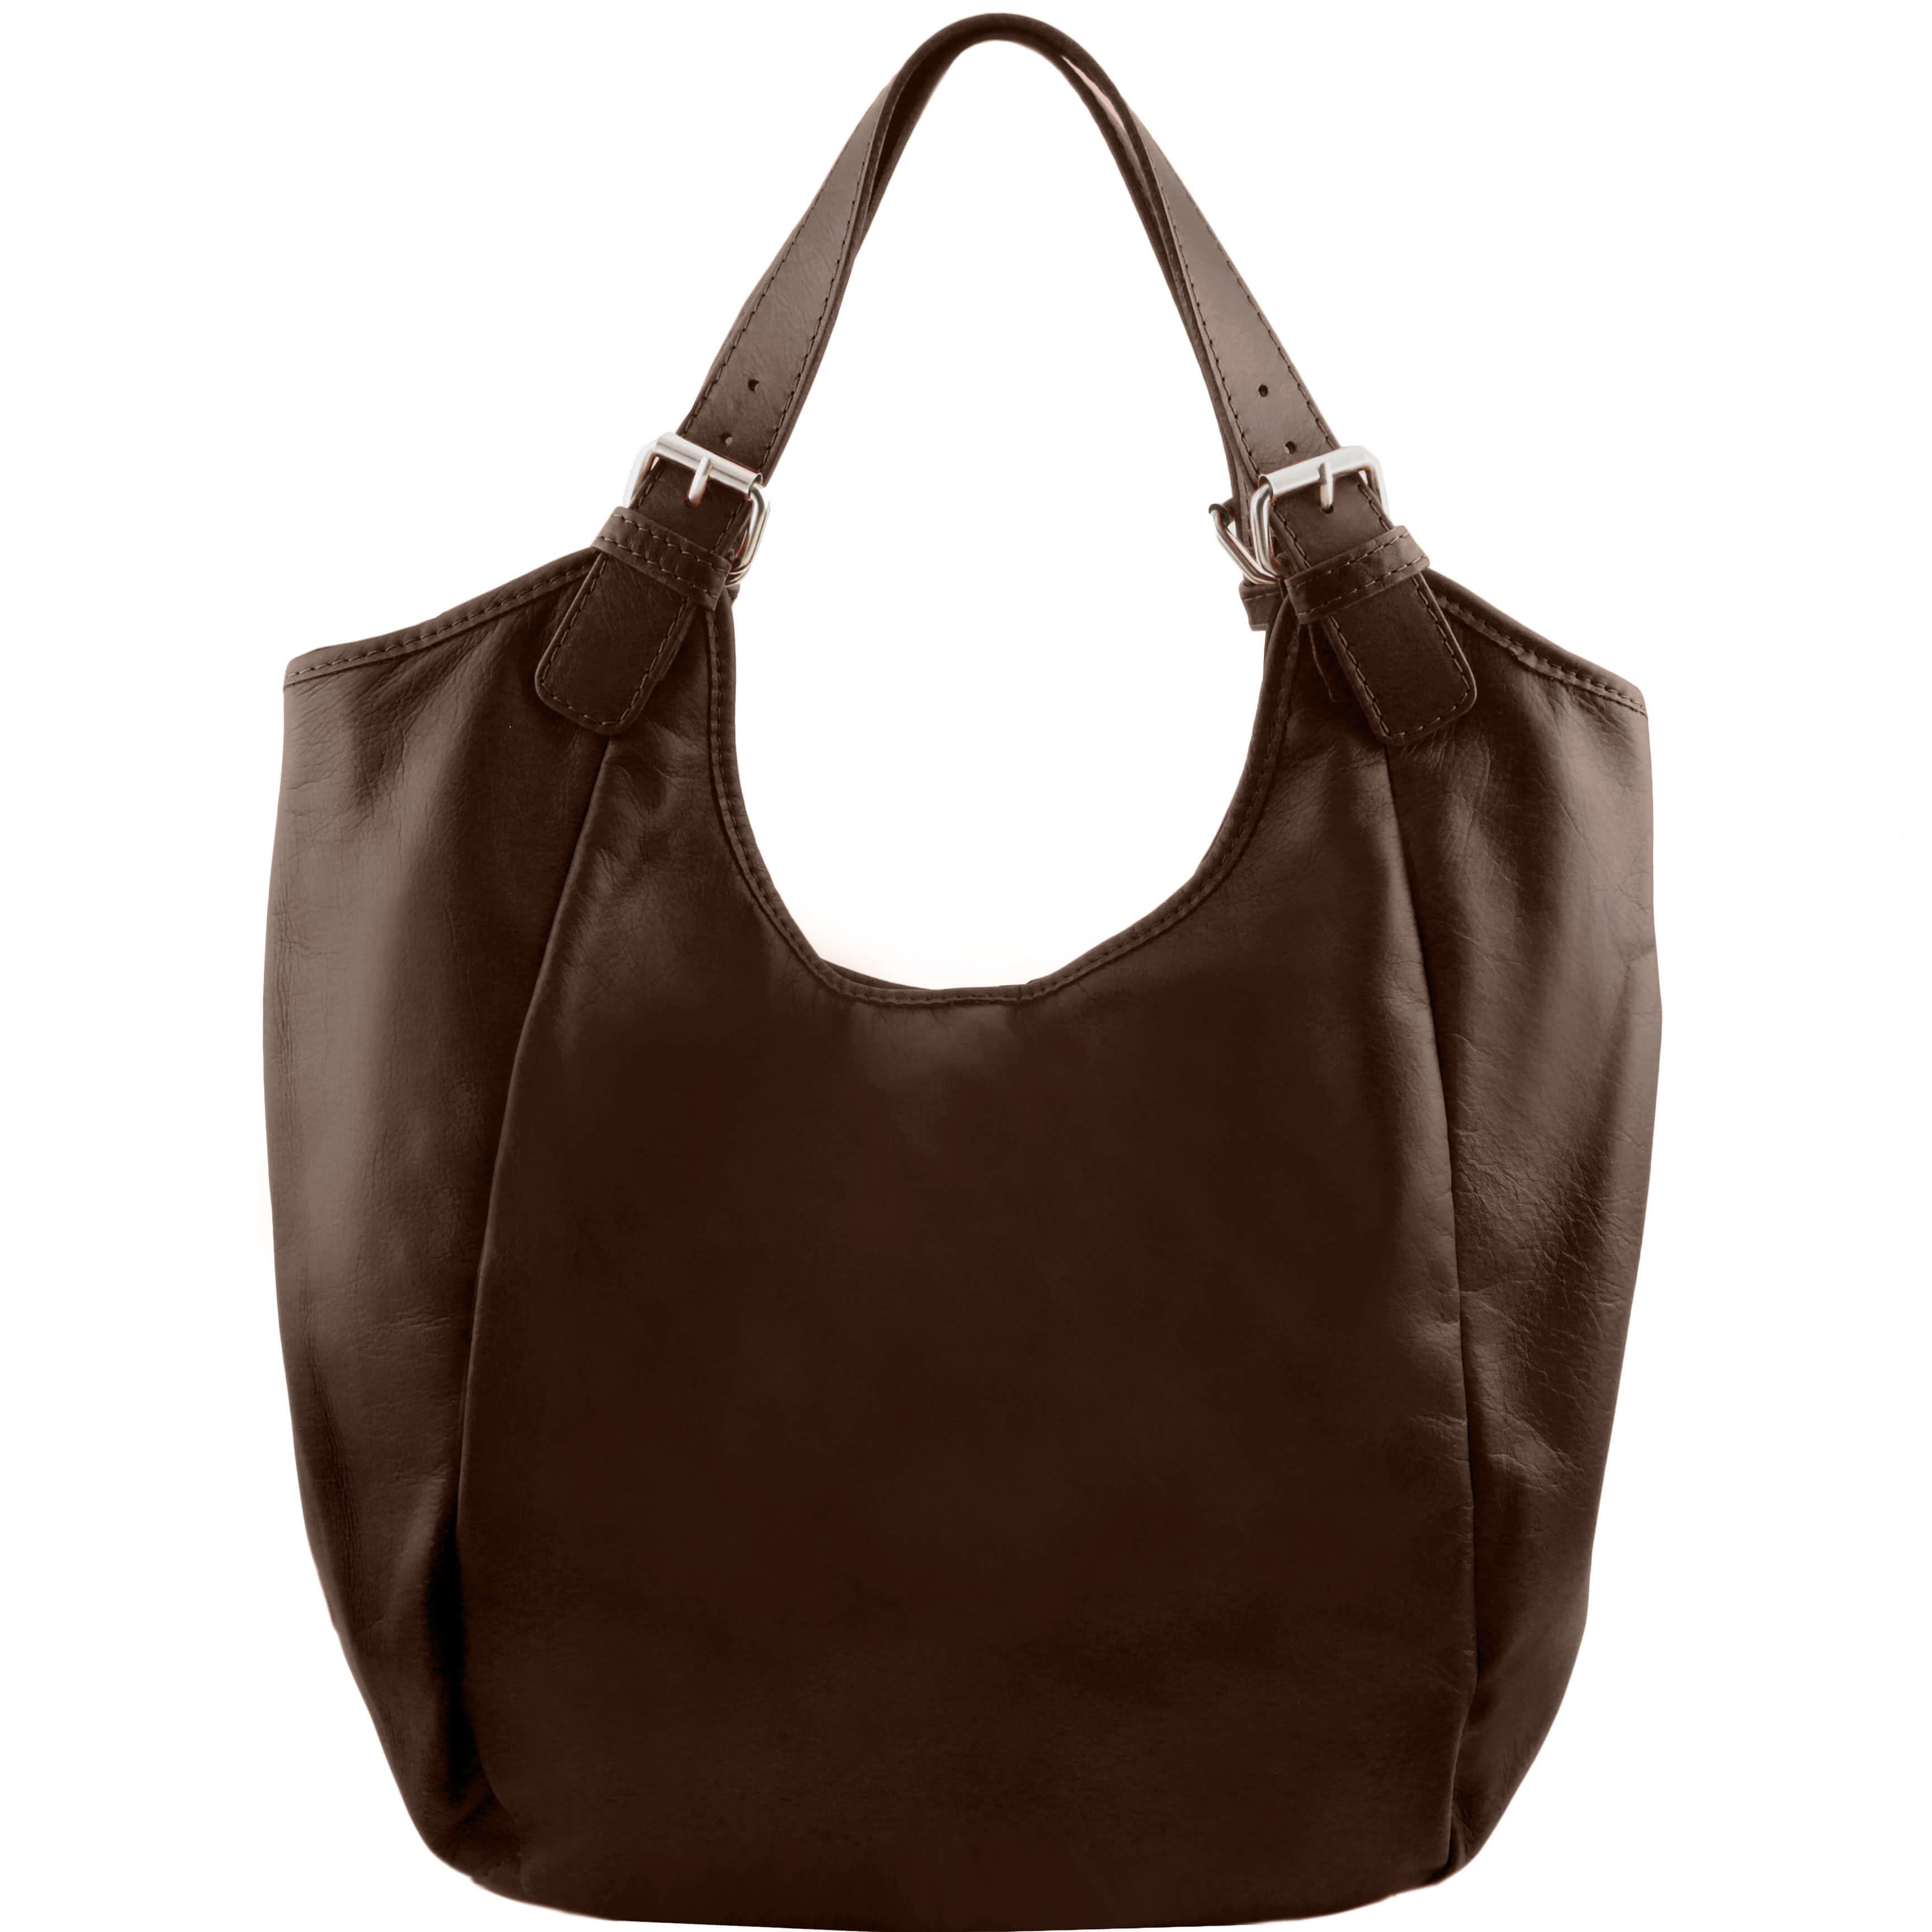 TL141357 Gina Classic Leather-Hand-Shoulder-Tote-Hobo-Bag Beige